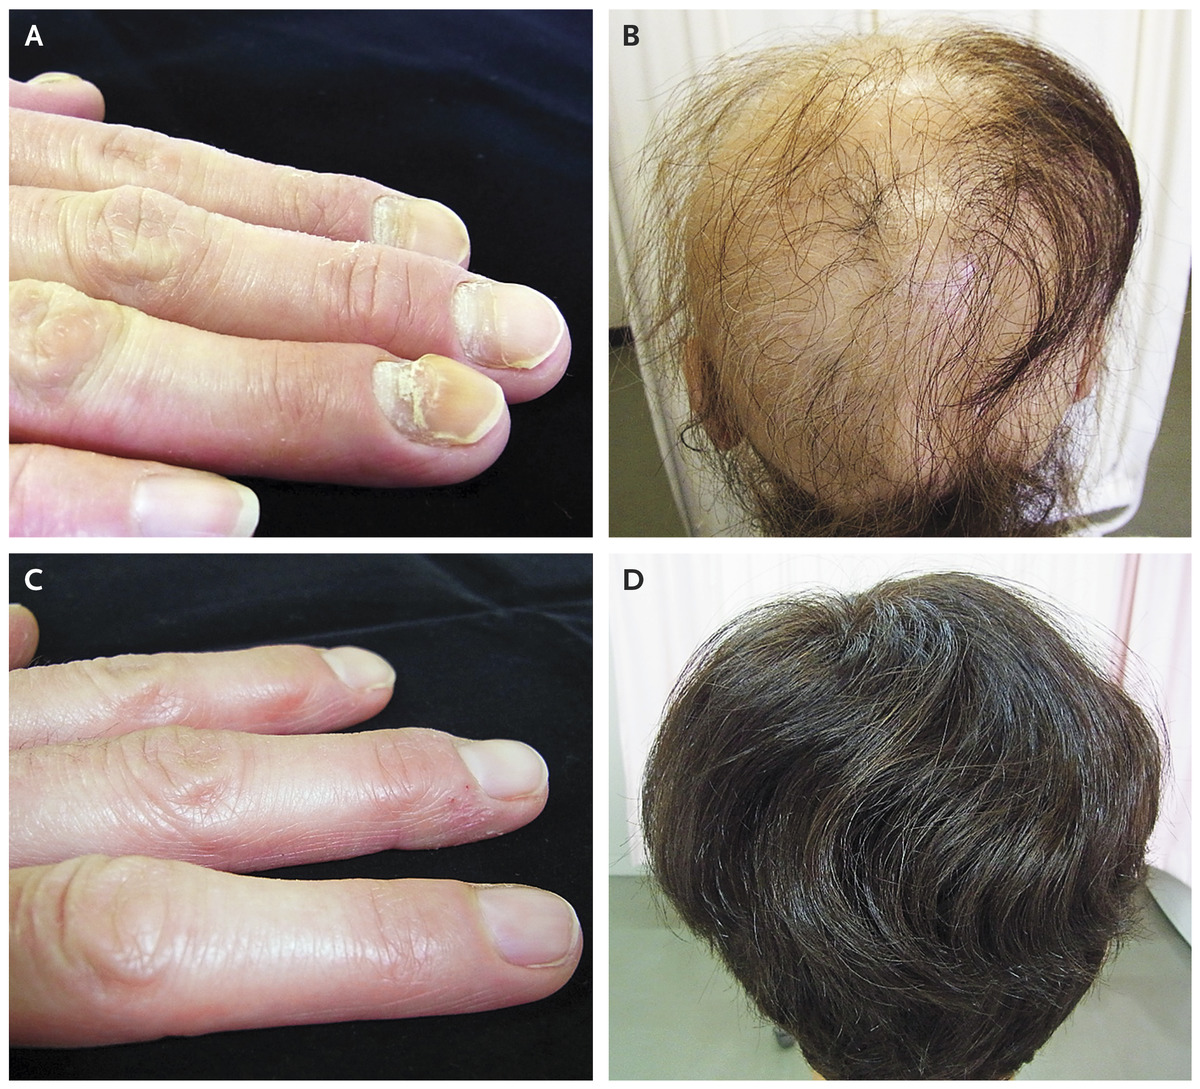 A 41 Year Old Woman Presented To The Endocrinology Clinic With Nail Changes That Had Occurred Over Several Months And Hair Loss Progressively